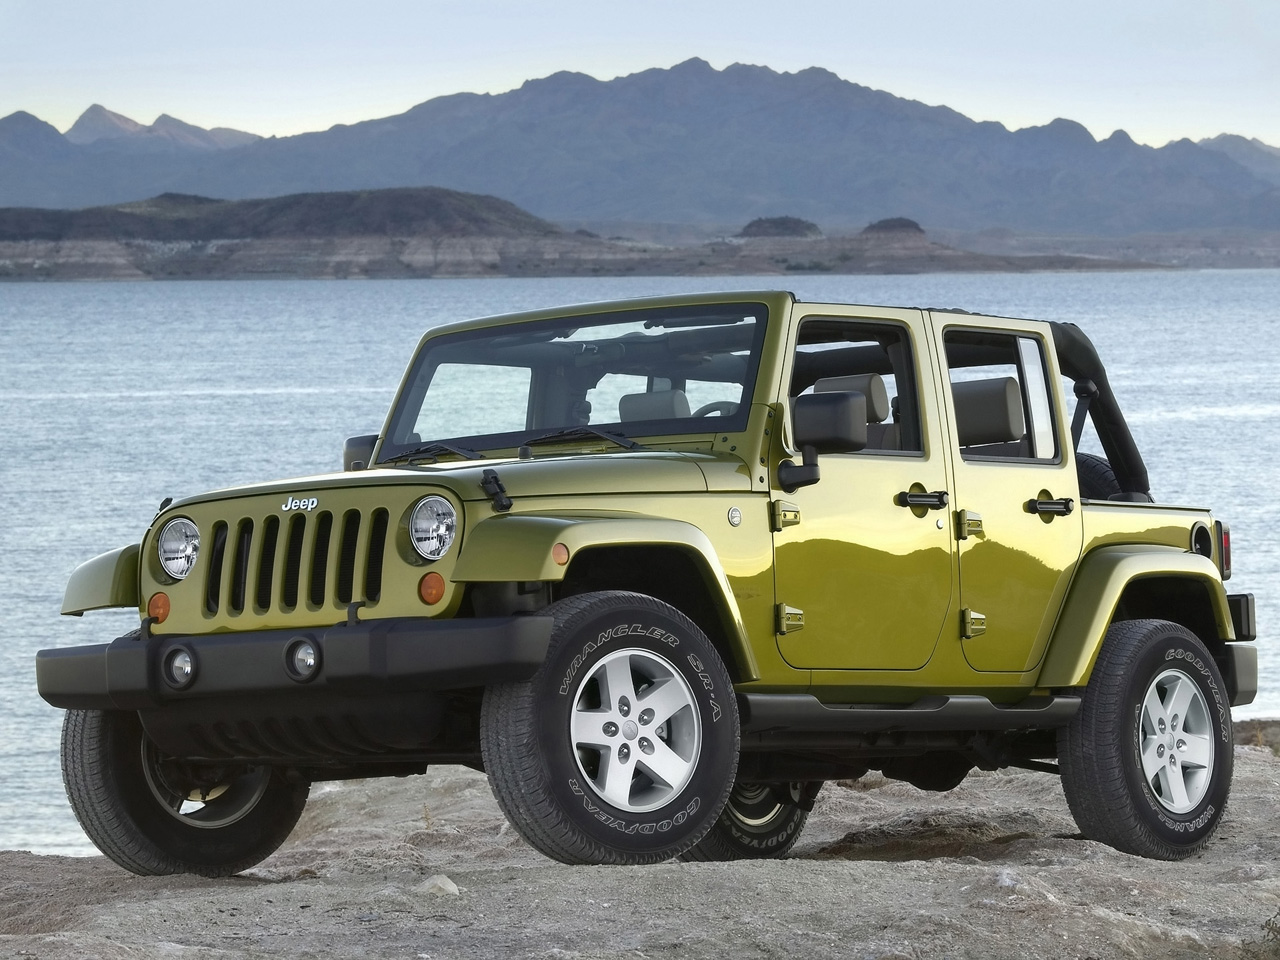 Jeep Wrangler Olive Green Wallpaper Free For Android